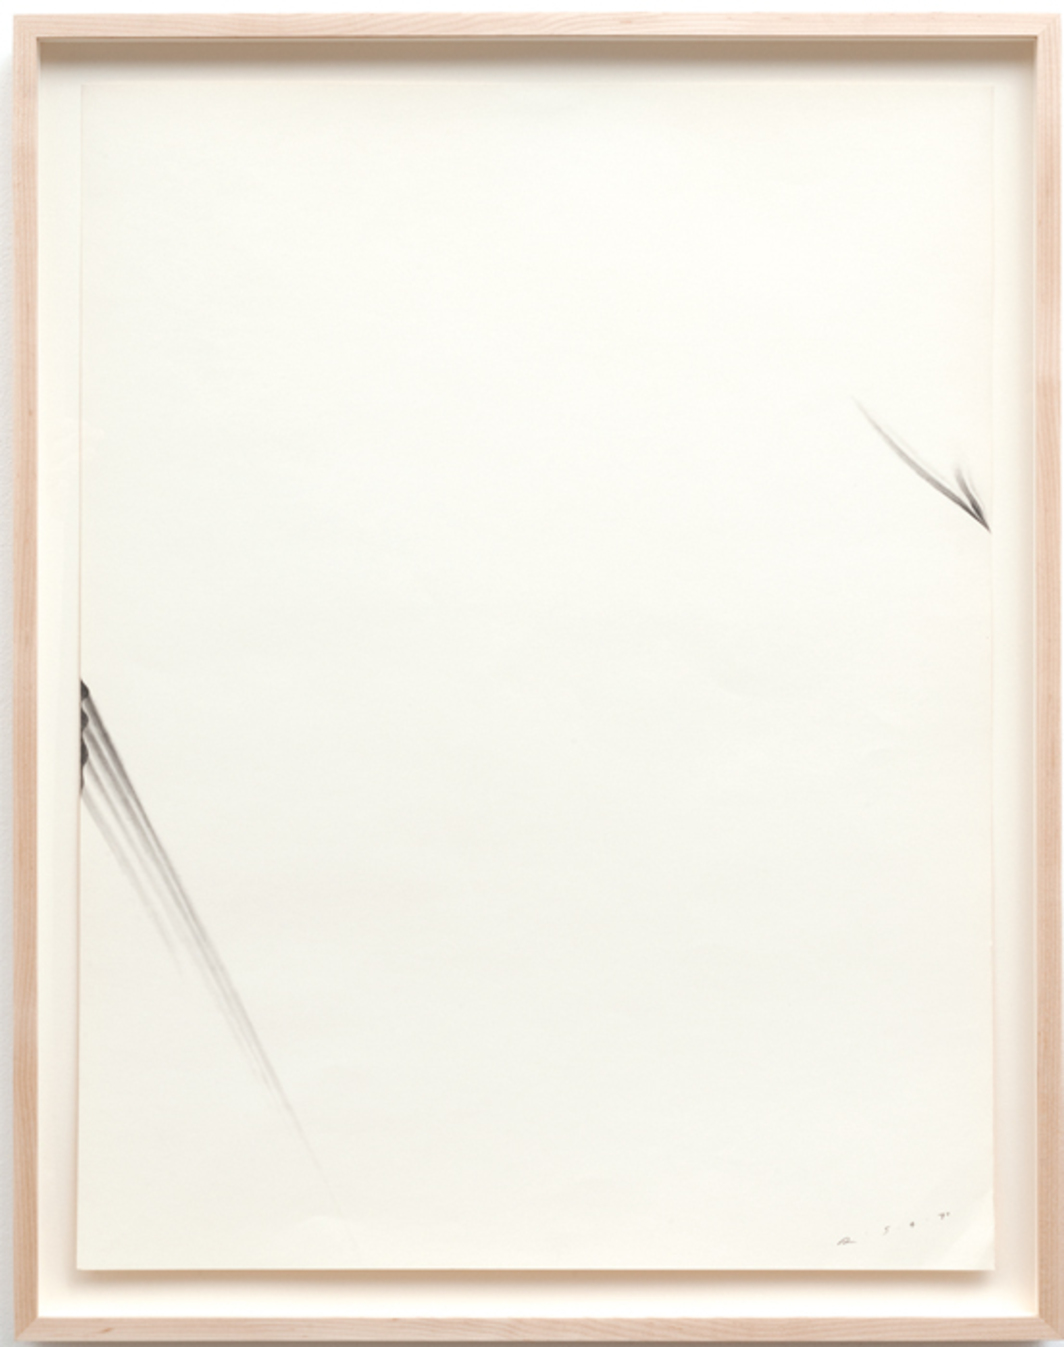 "Robert Overby, Two Stretch Drawings, 1970, graphite on paper, 26 x 20""."